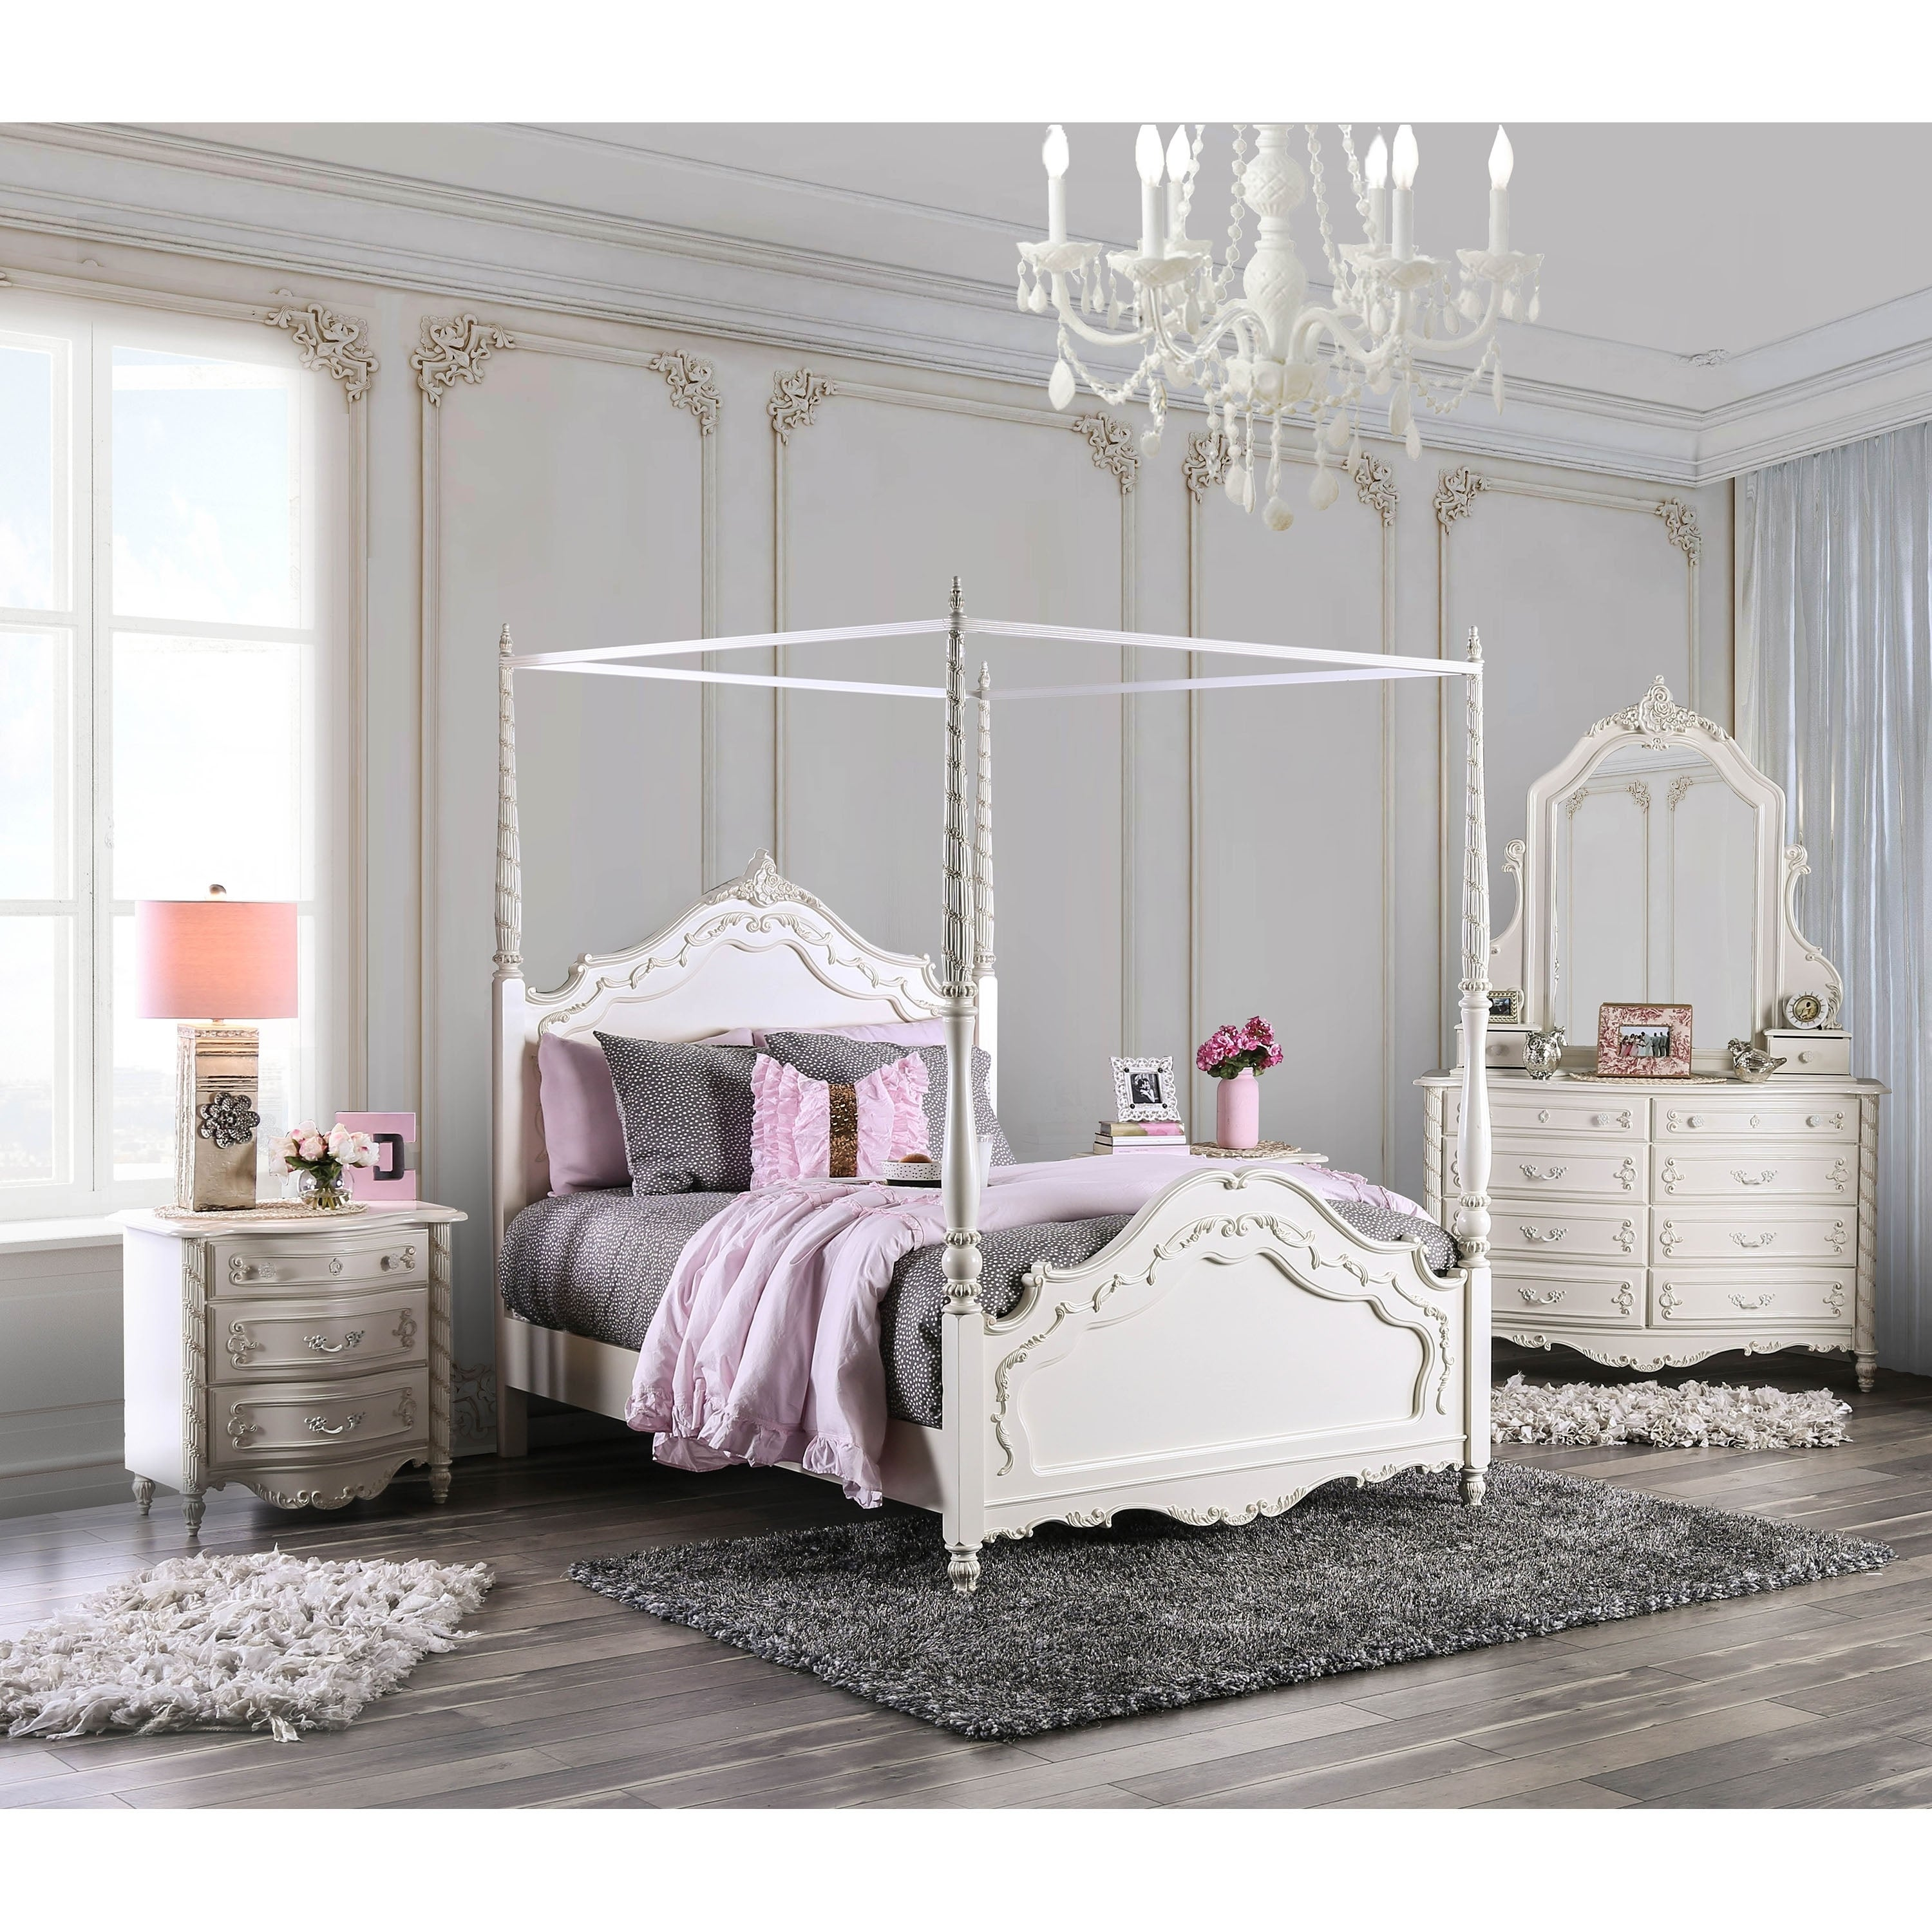 Furniture Of America Imer Transitional White 4 Piece Canopy Bed Set Overstock 9378467